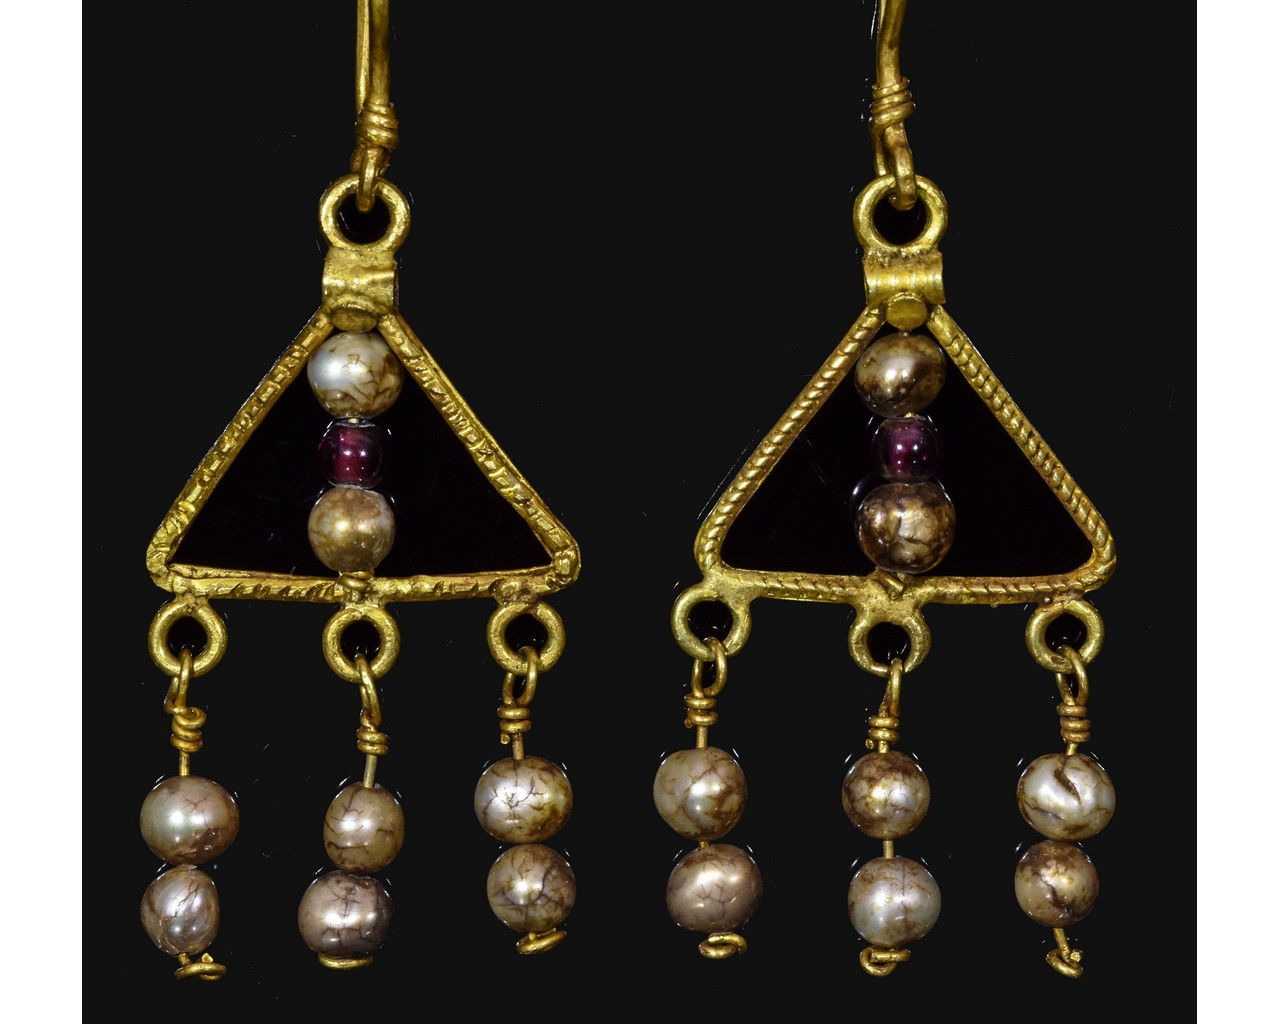 Lot 31 - ROMAN GOLD EARRINGS WITH PEARLS